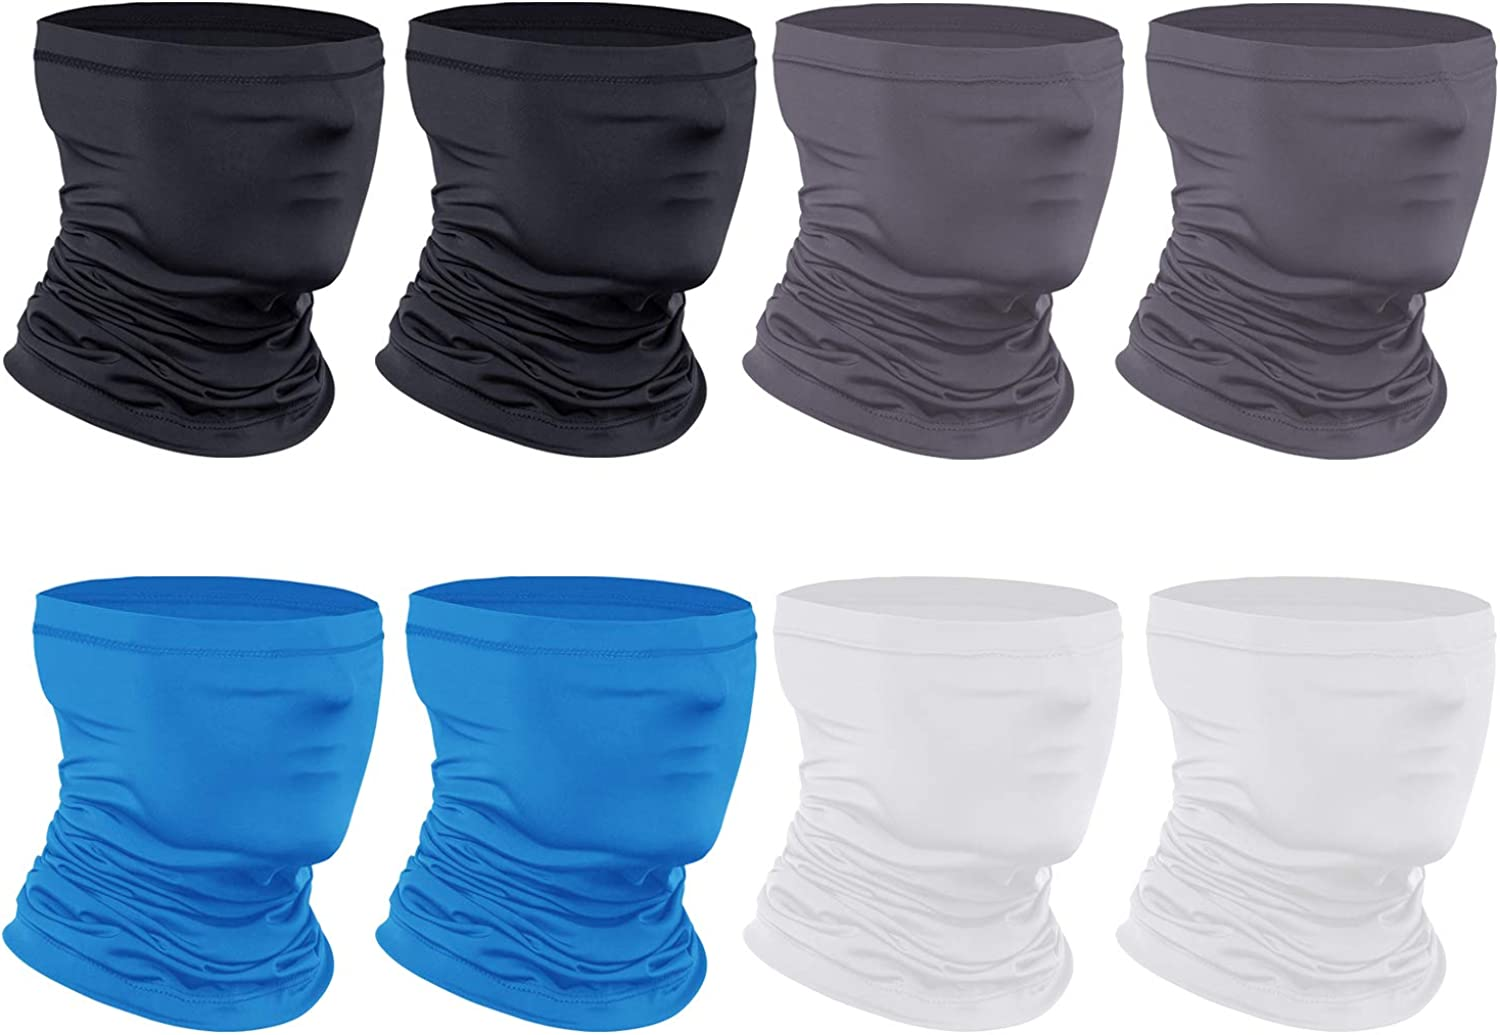 [8-Pack] Neck Gaiter Scarf, Breathable Bandana Face Mask Cooling Neck Gaiter for Men Women Cycling Hiking Fishing.